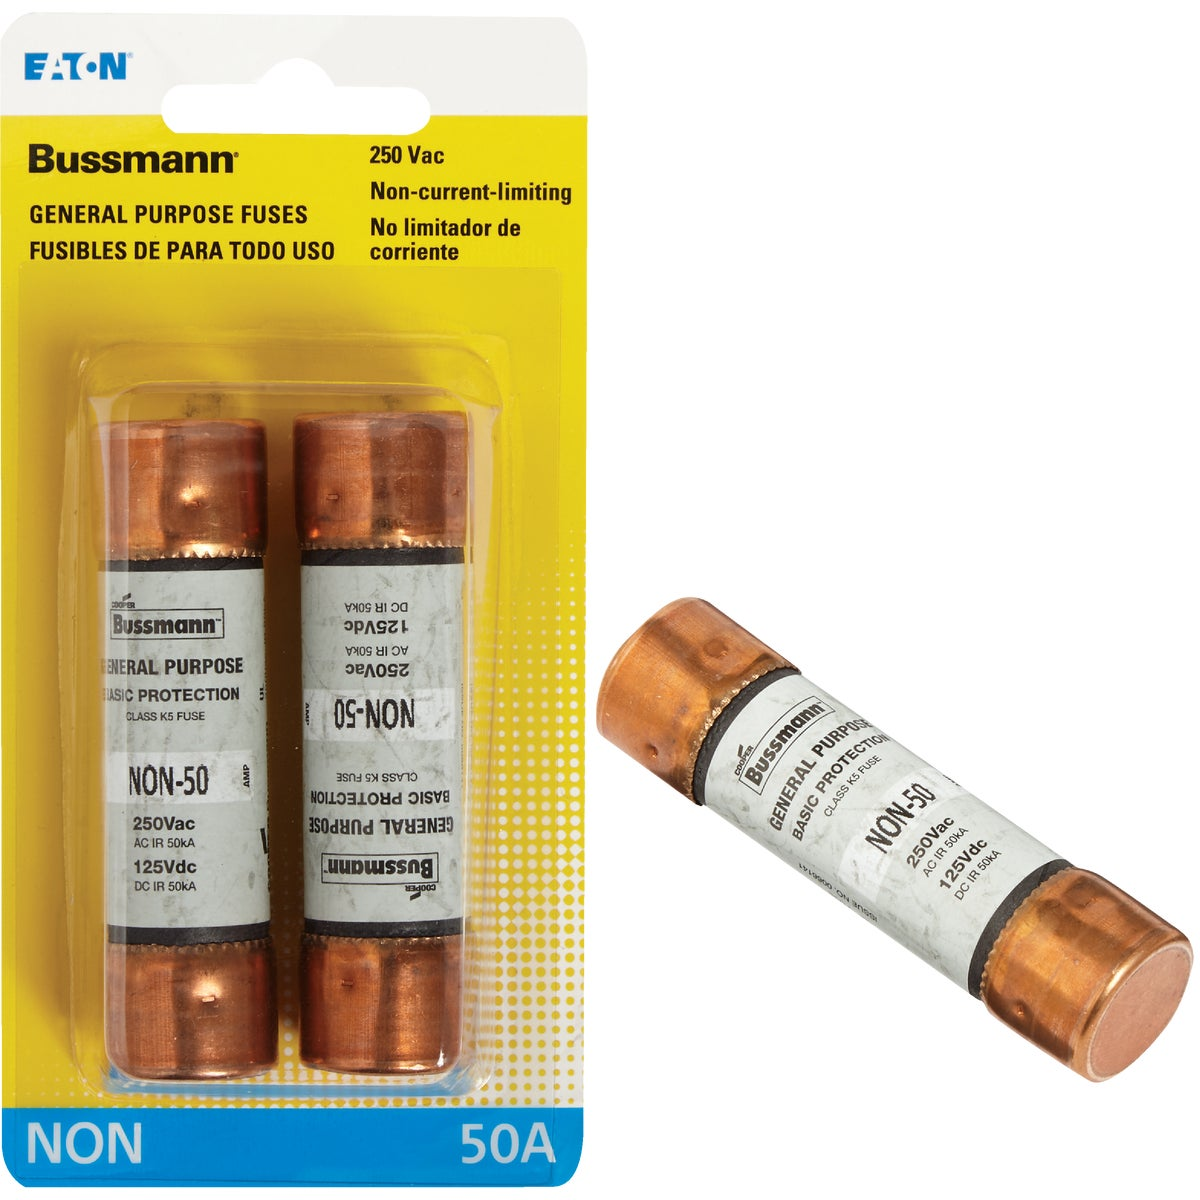 50A FAST ACTING FUSE